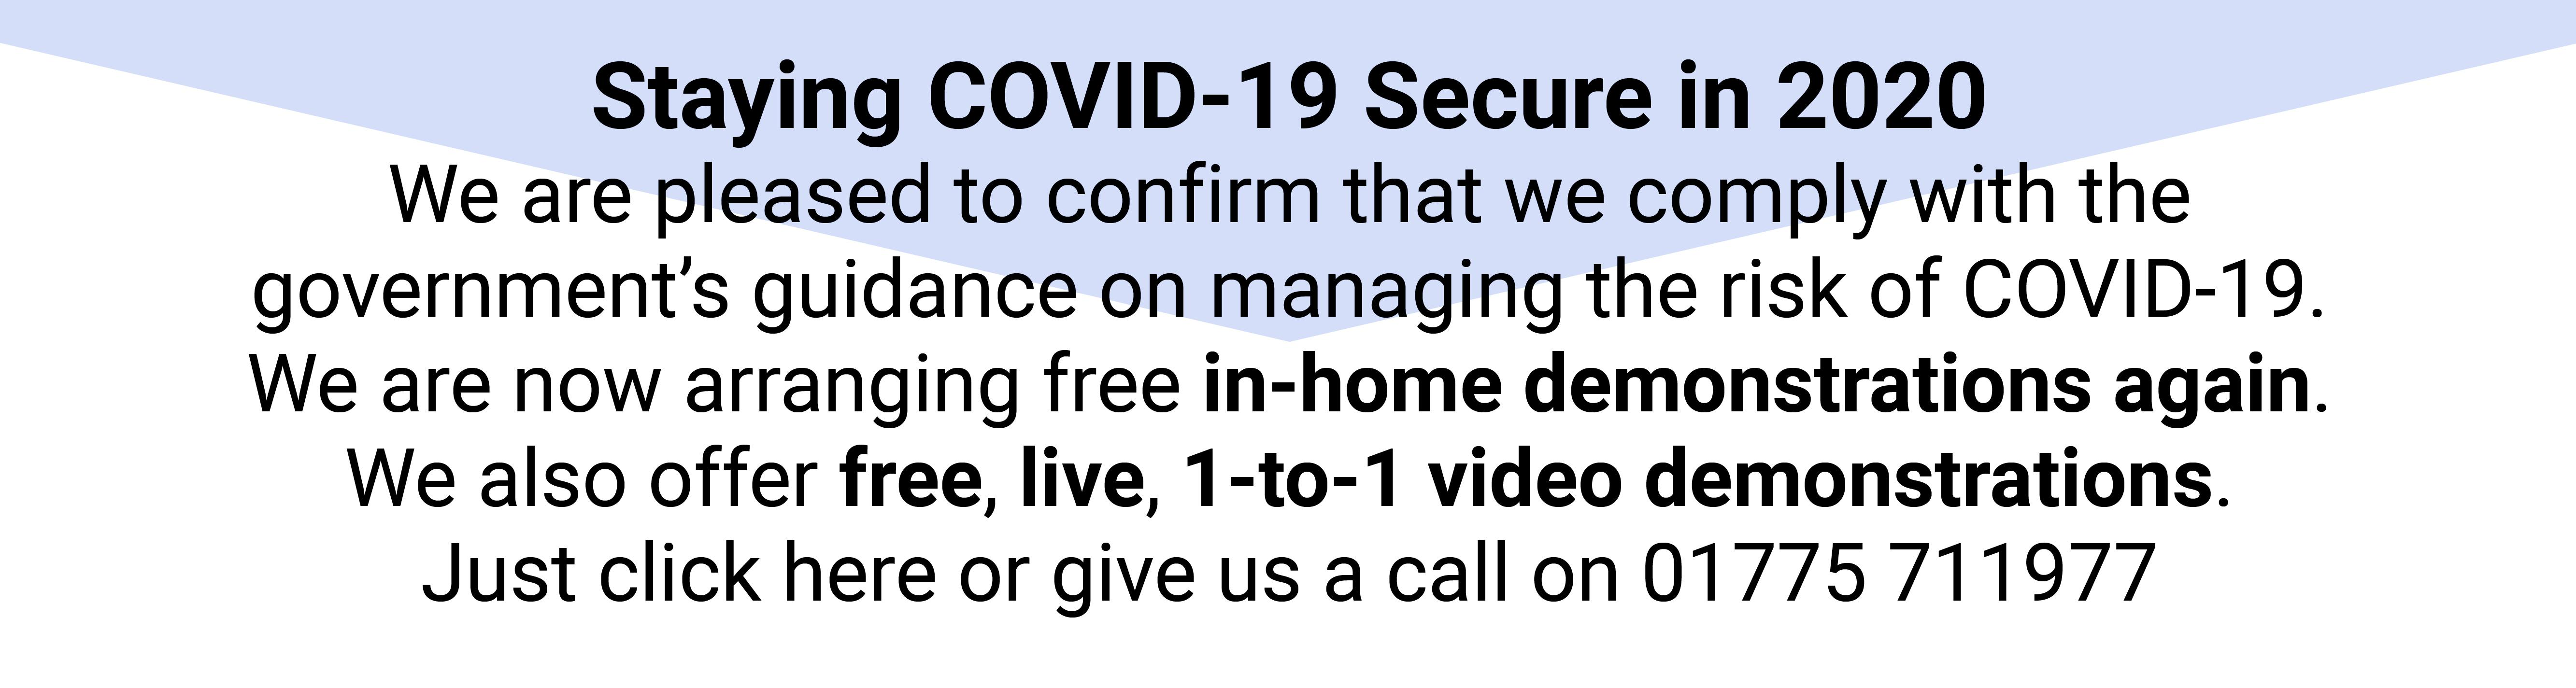 Staying COVID-19 Secure in 2020 We are pleased to confirm that we comply with the  government's guidance on managing the risk of COVID-19.  We are now arranging free in-home demonstrations again. We also offer free, live, 1-to-1 video demonstrations.  Just click here or give us a call on 01775 711977